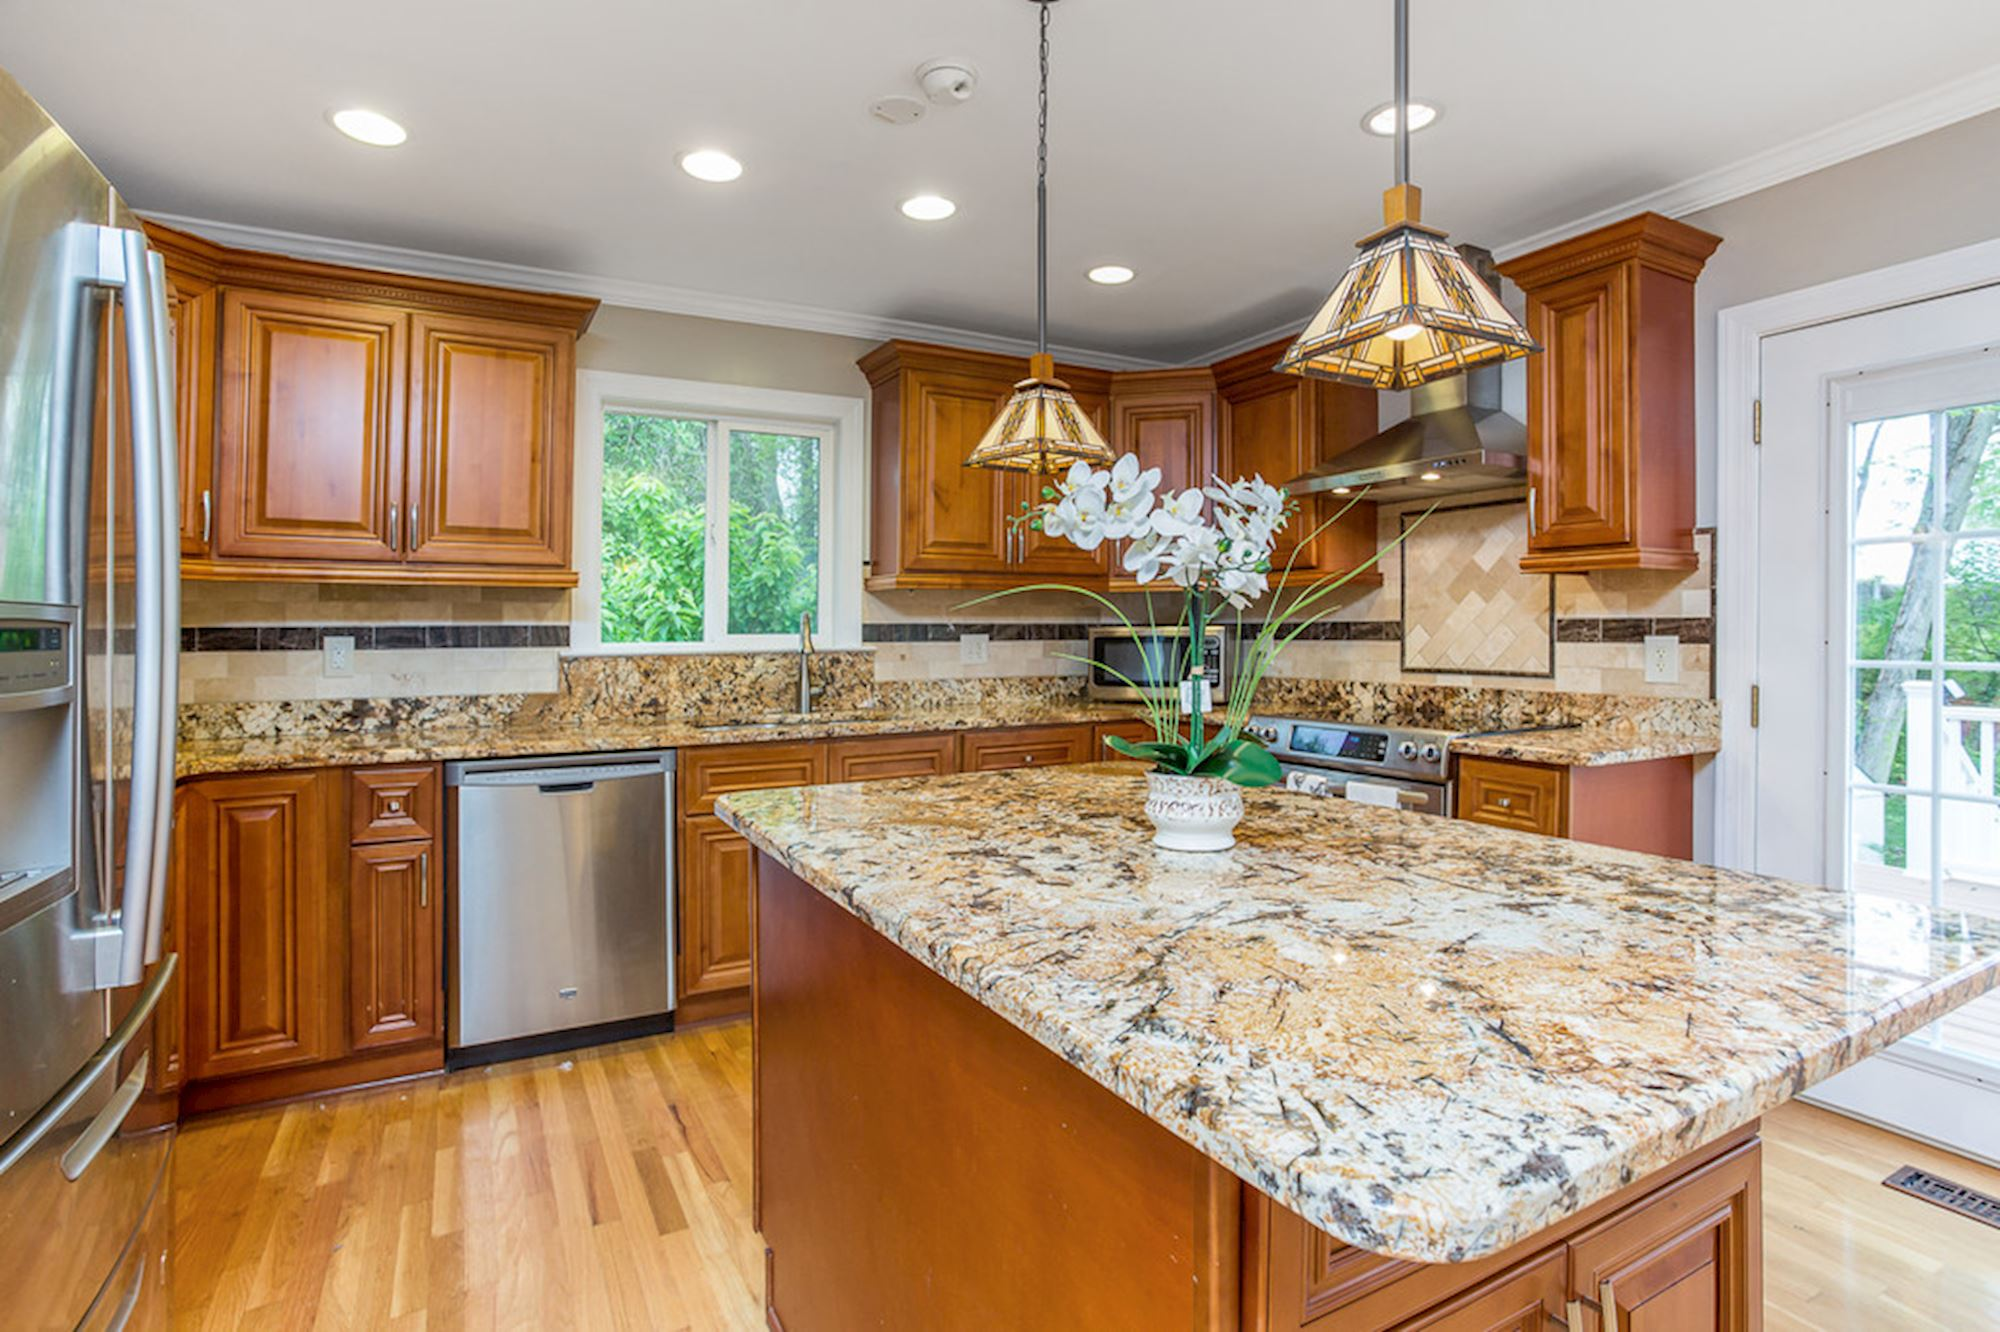 NEW LISTING:Expanded Single Family Home in Annandale